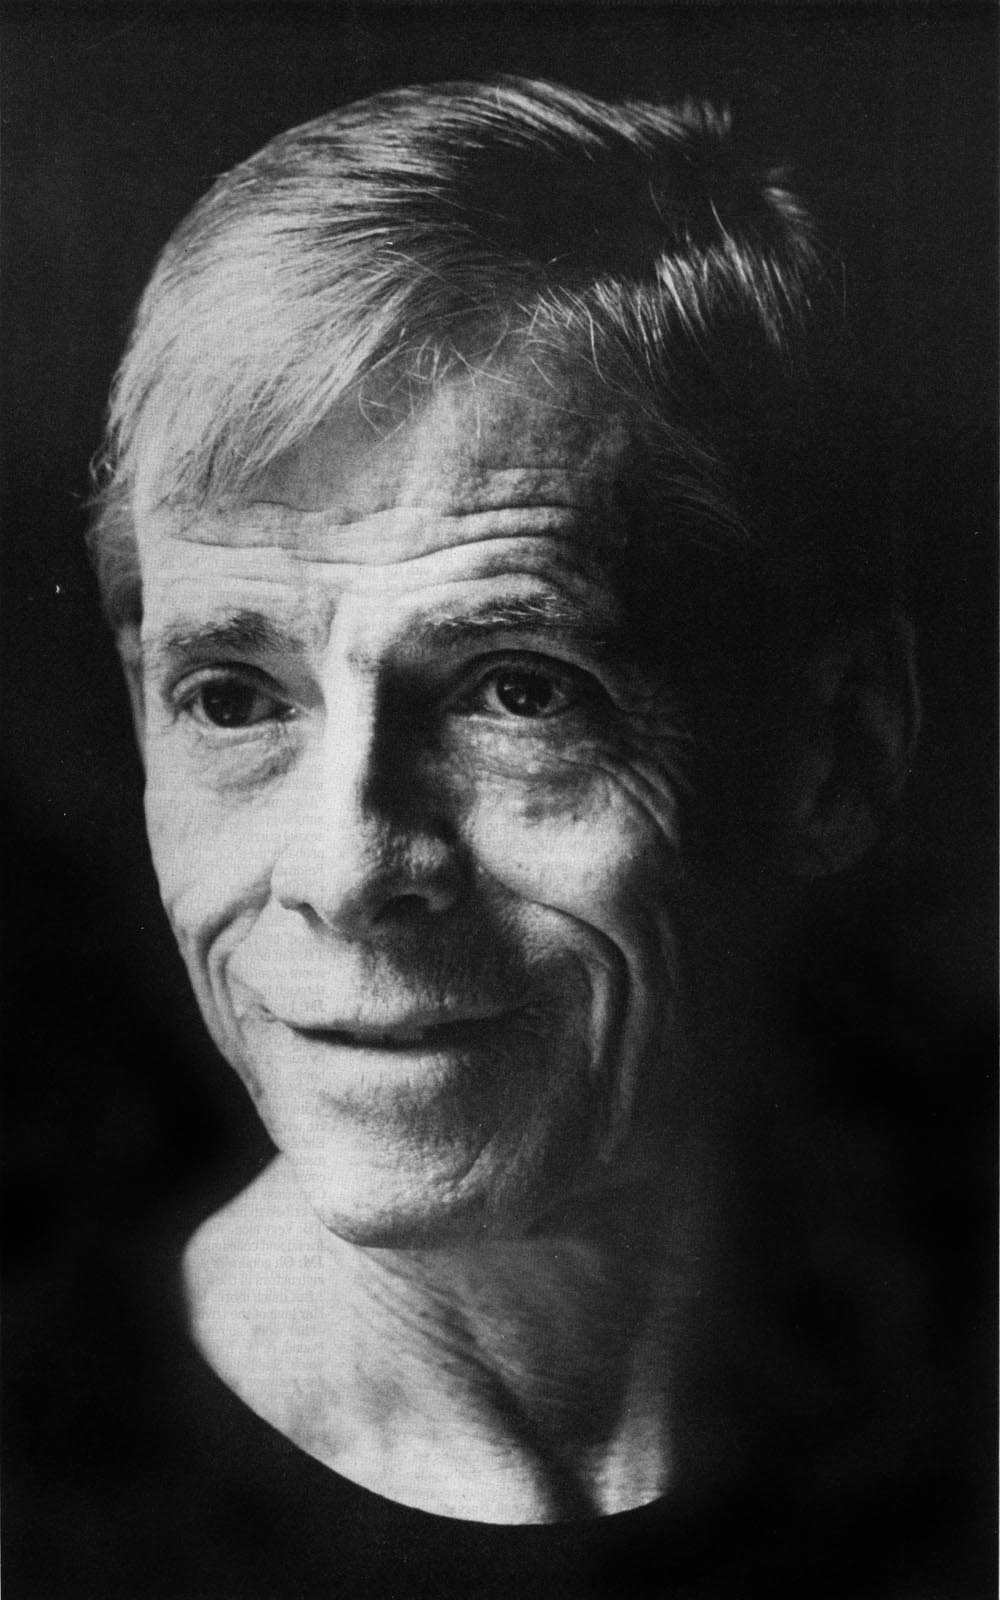 James Merrill looked a little like Joel Grey, right?